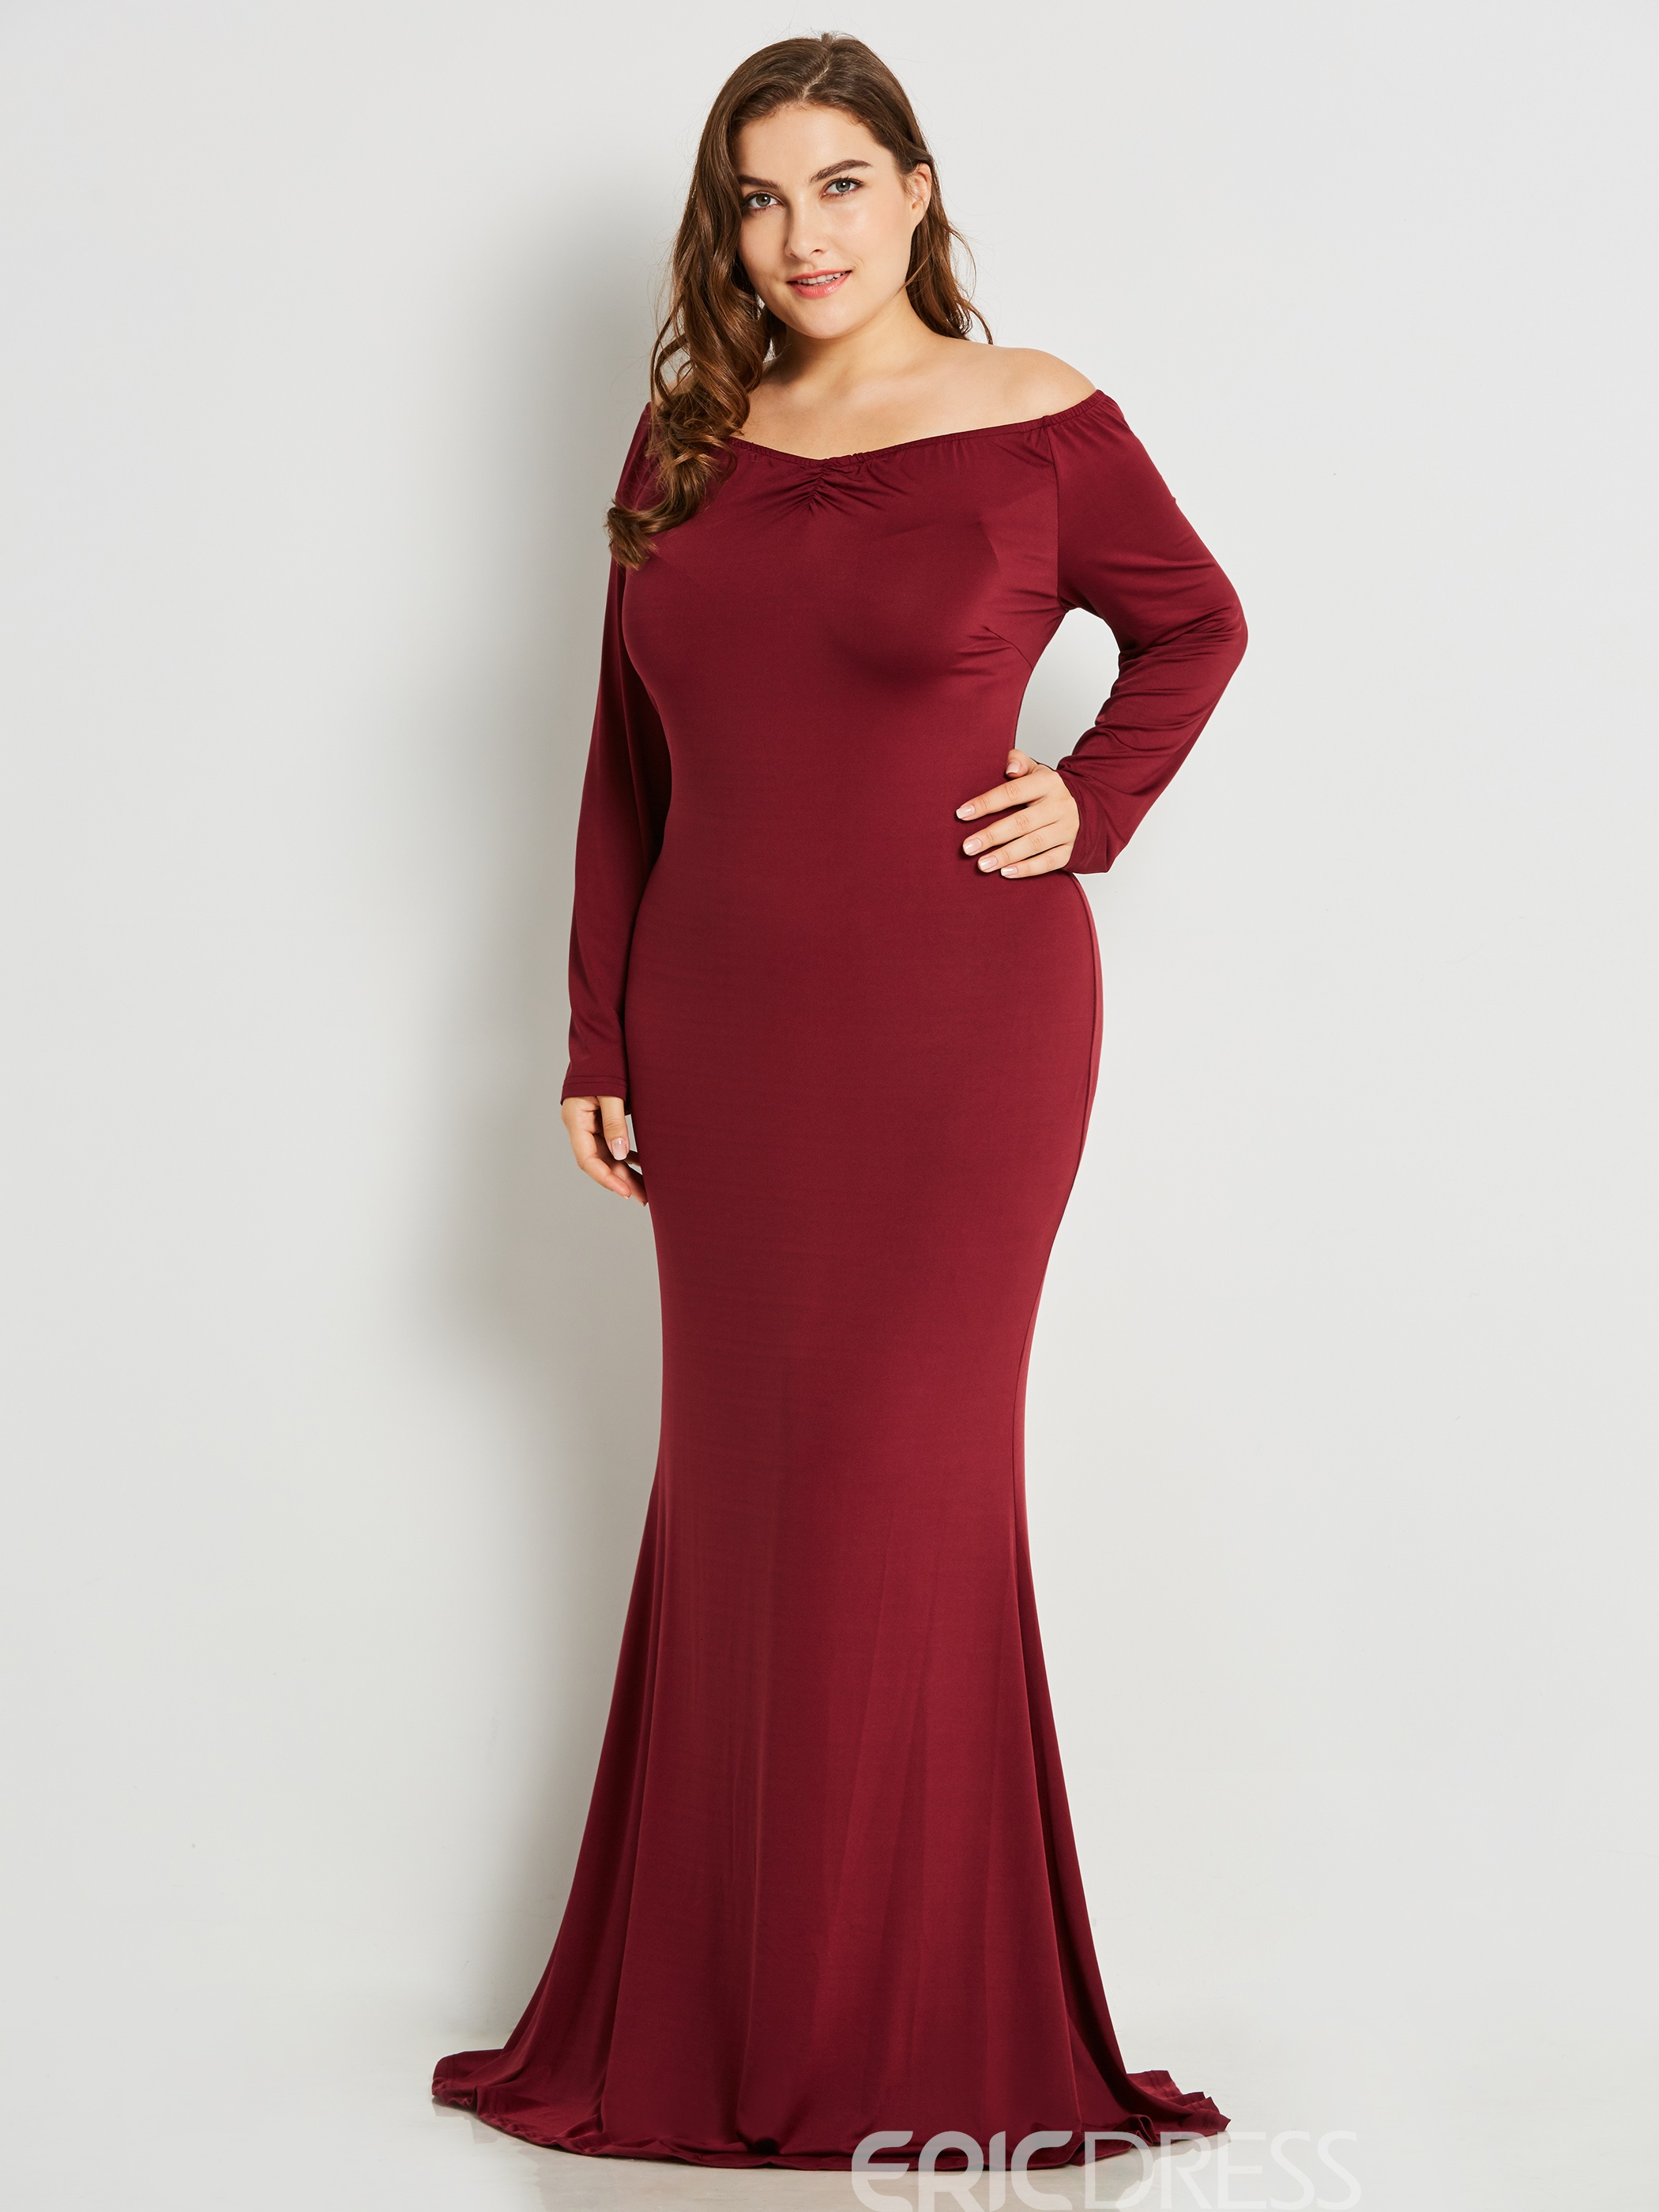 0c44e9d2834 Ericdress Plus Size V-Neck Slim Pleated Solid Collar Maxi Dress(12778226)